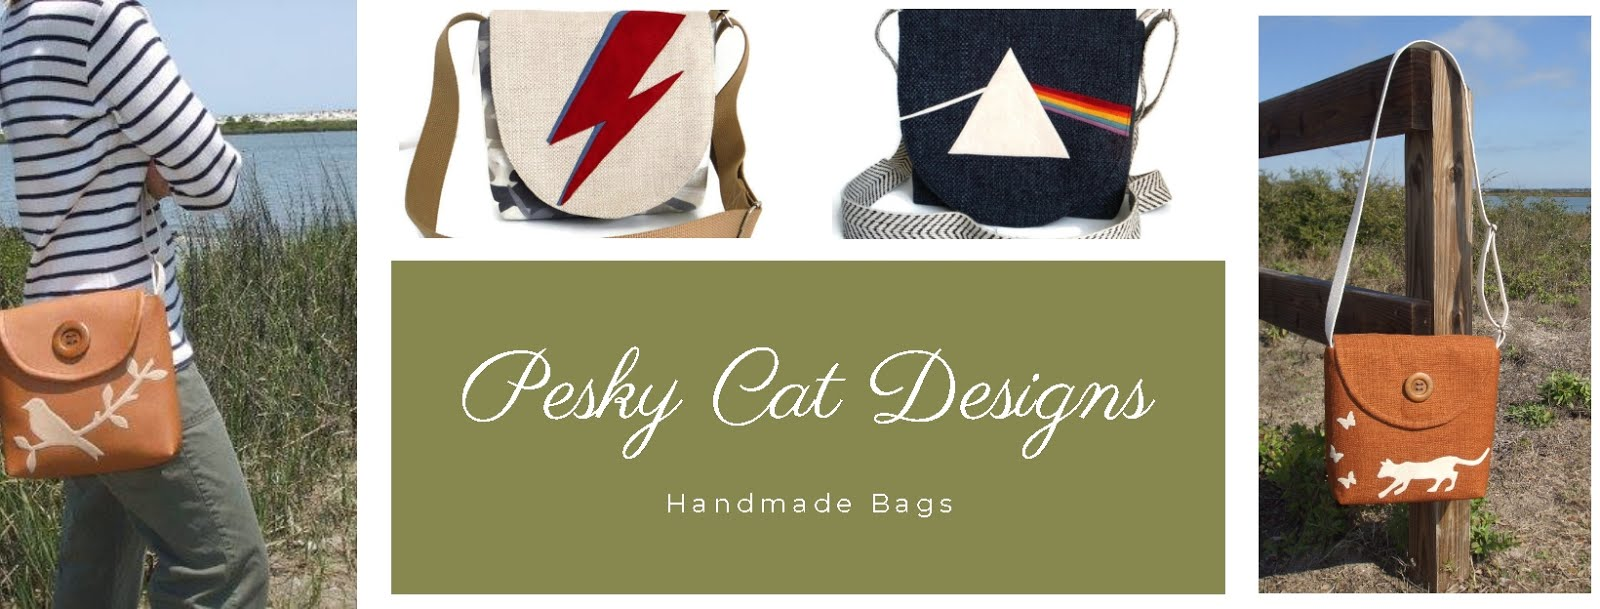 Pesky Cat Designs